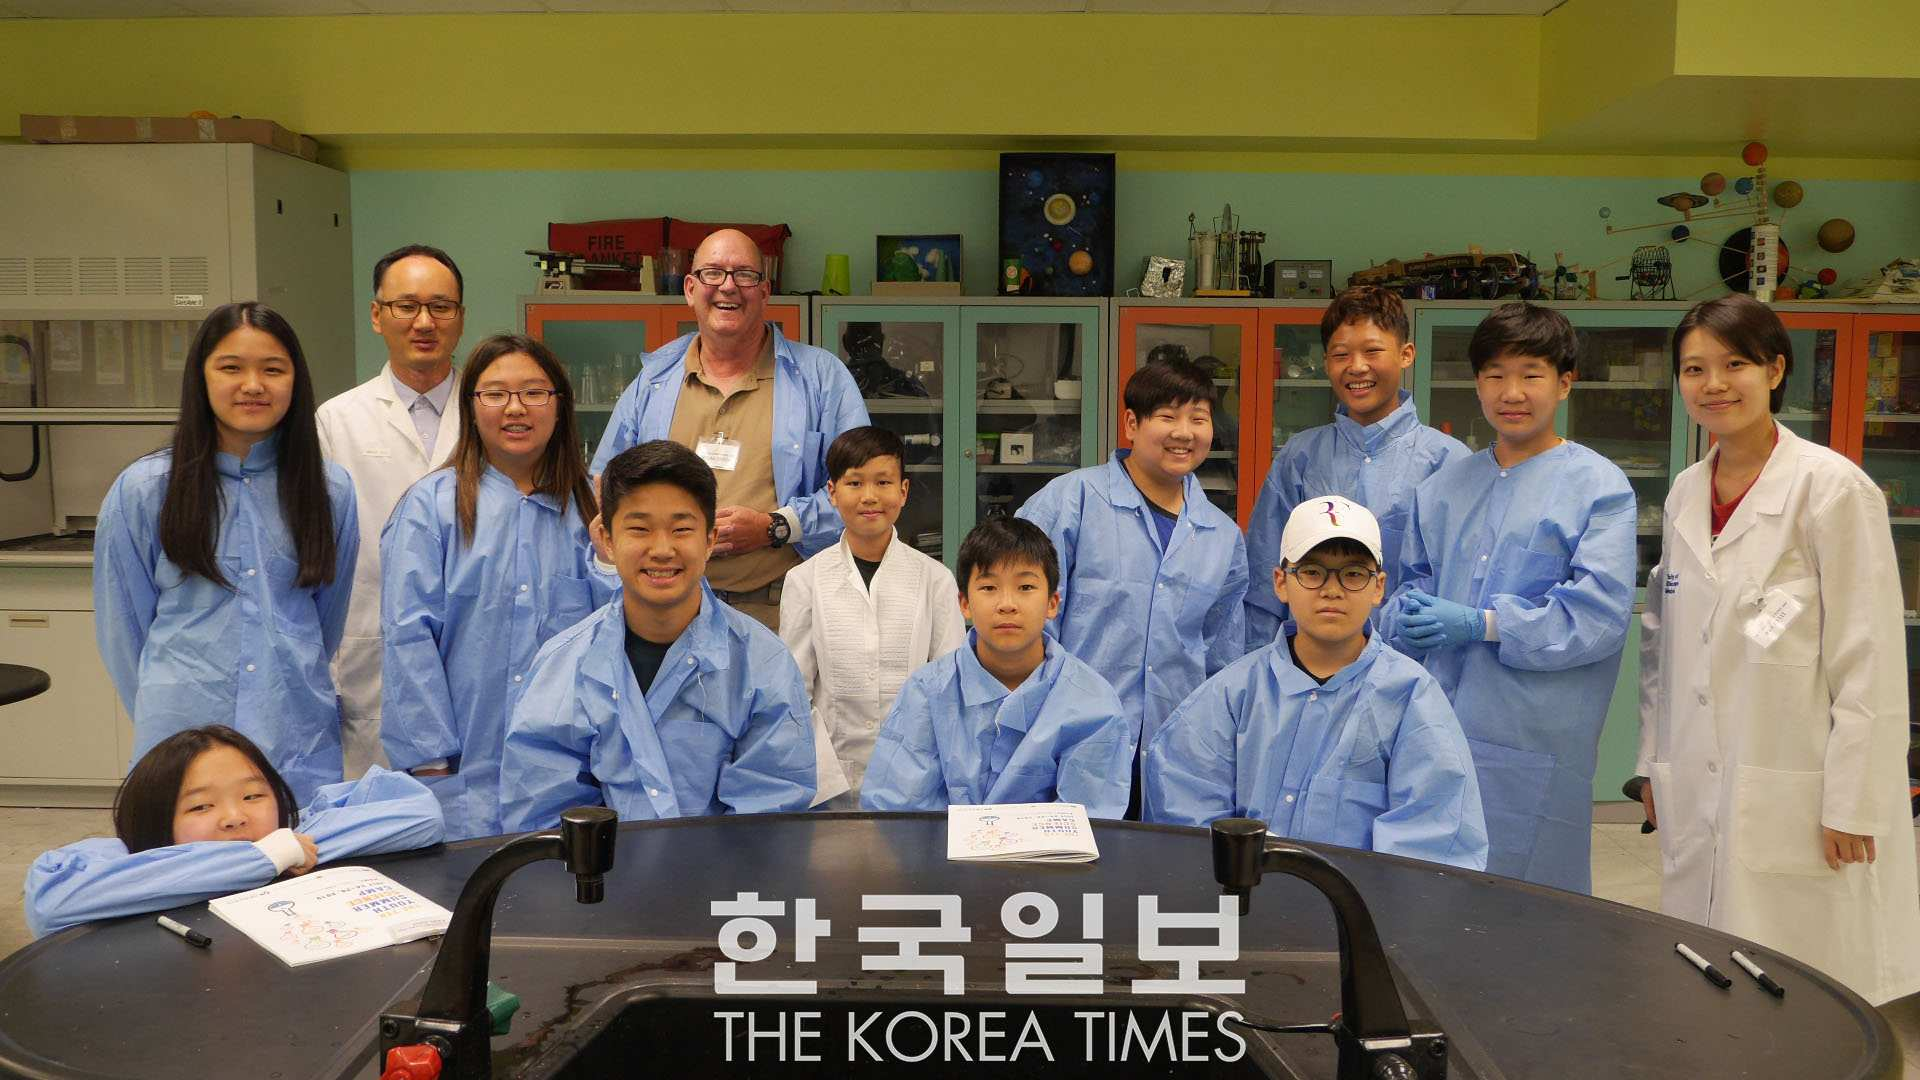 Check out this article about the 2019 Youth Summer Science Camp covered by the Chicago Korea Times - Korean language only